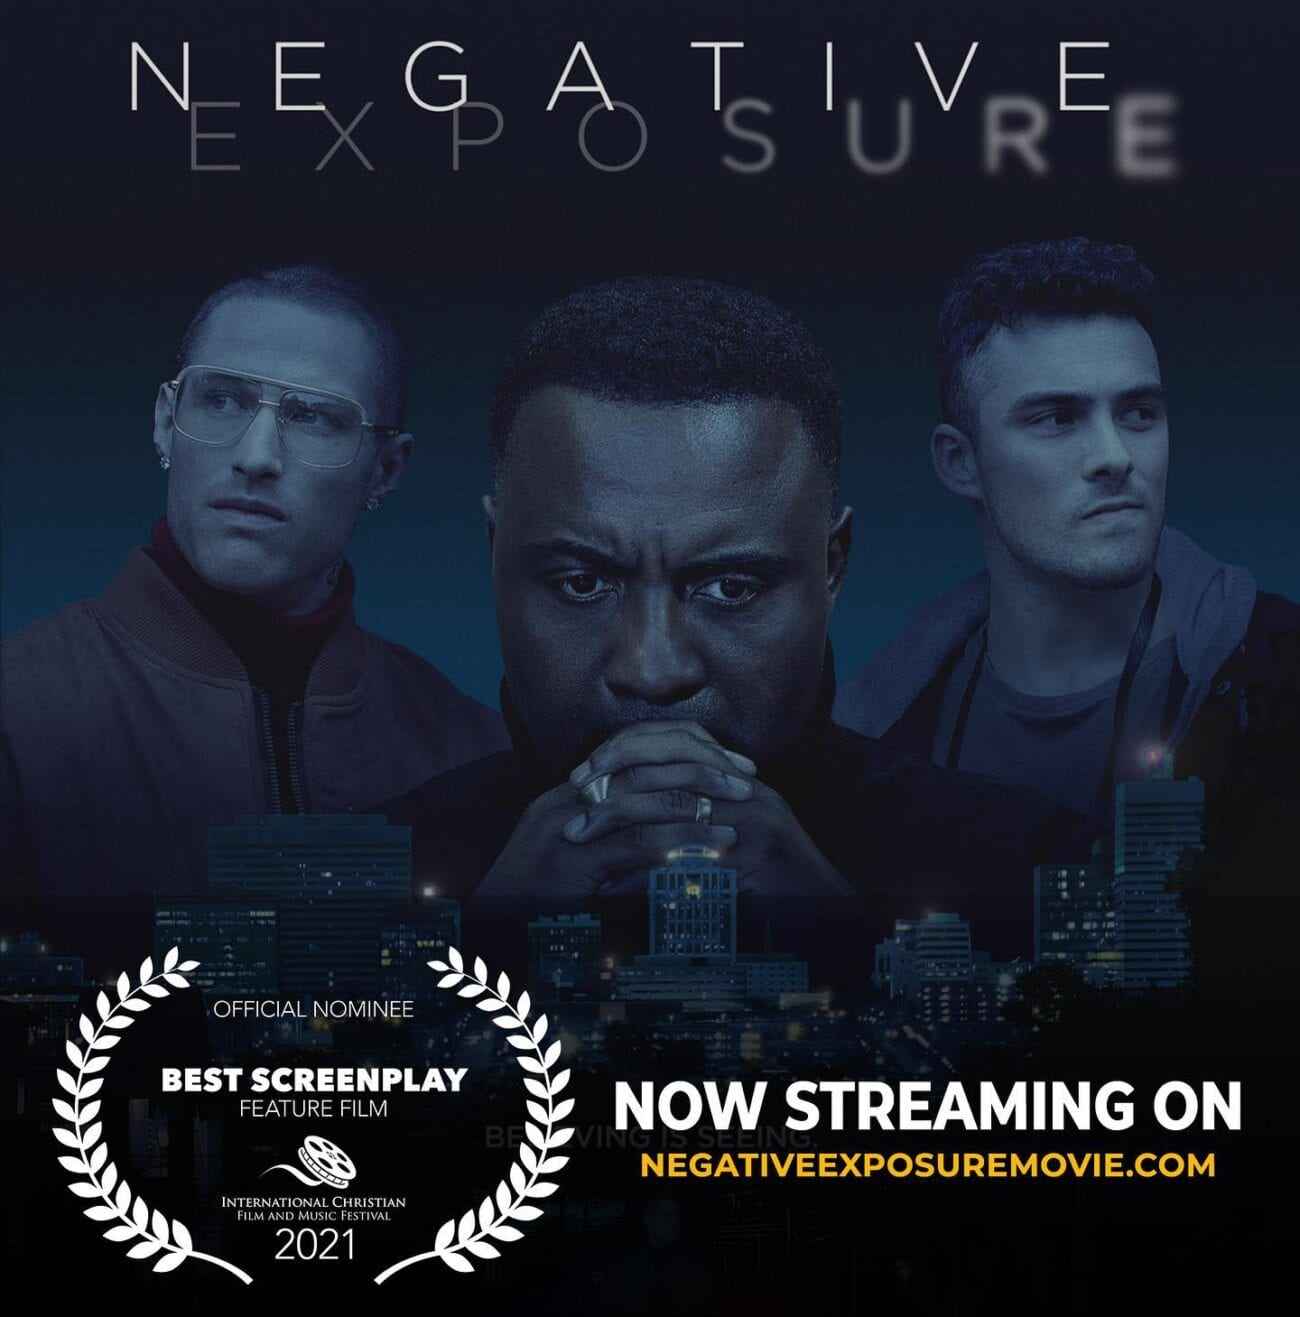 Amazon Prime has put a spotlight on the controversial new film 'Negative Exposure'. Learn about the film here.